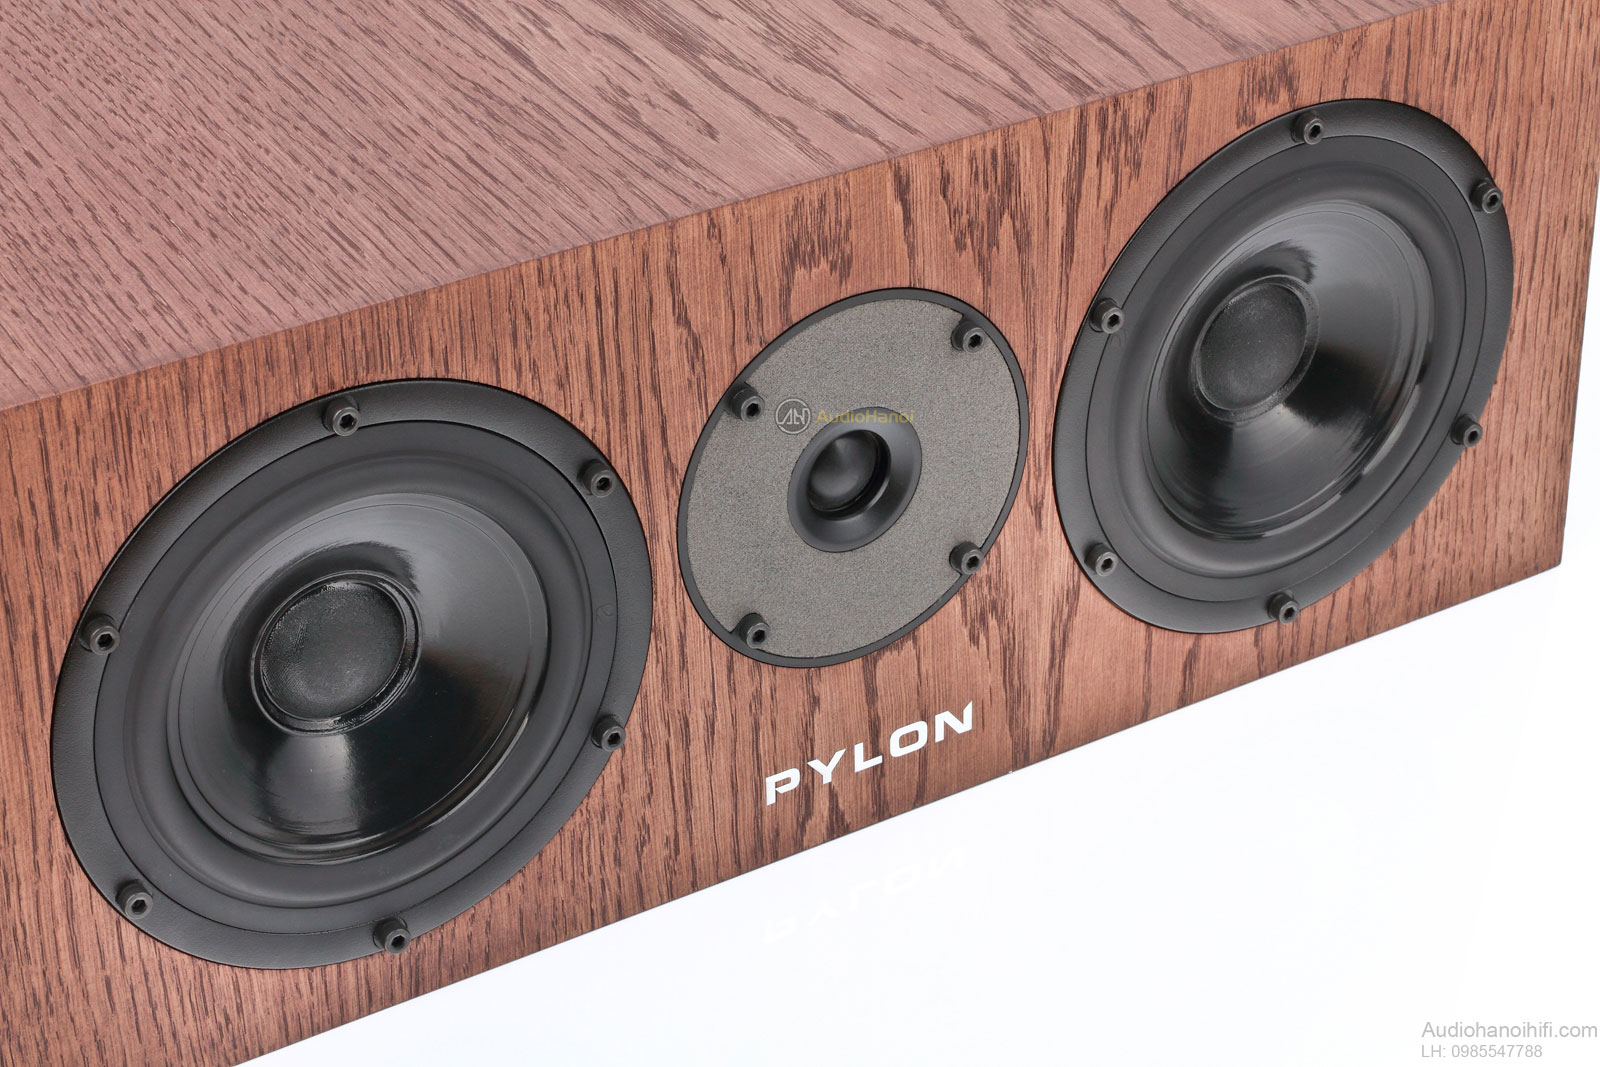 Pylon audio diamond center can canh